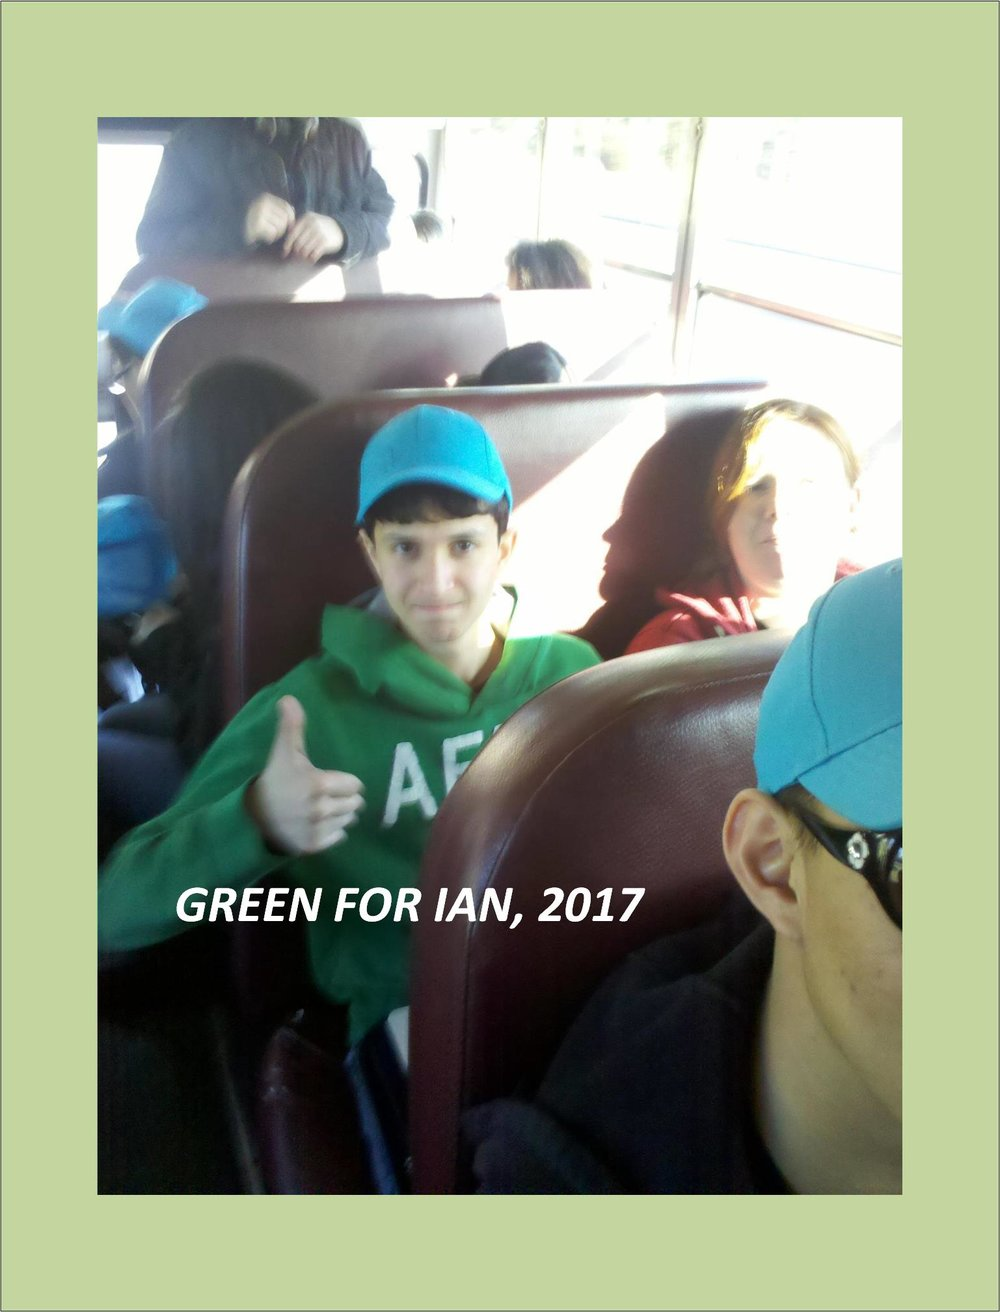 CLICK FOR GREEN FOR IAN, 2017                     PICTURES